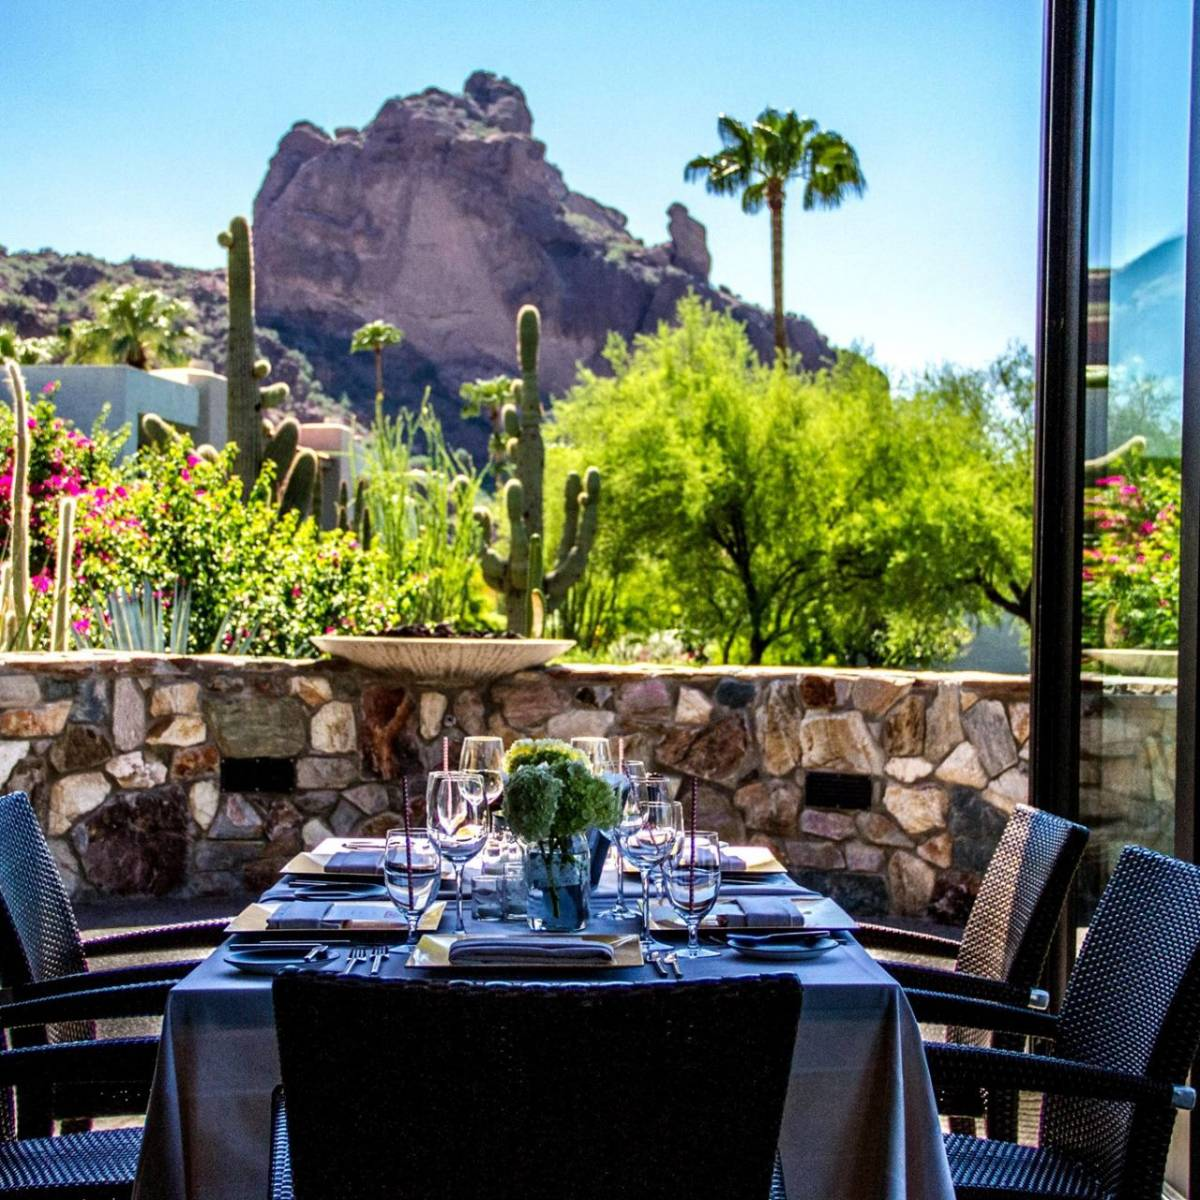 things to do in phoenix, things to do in scottsdale, phoenix travel guide, scottsdale travel guide, visit phoenix, visit scottsdale